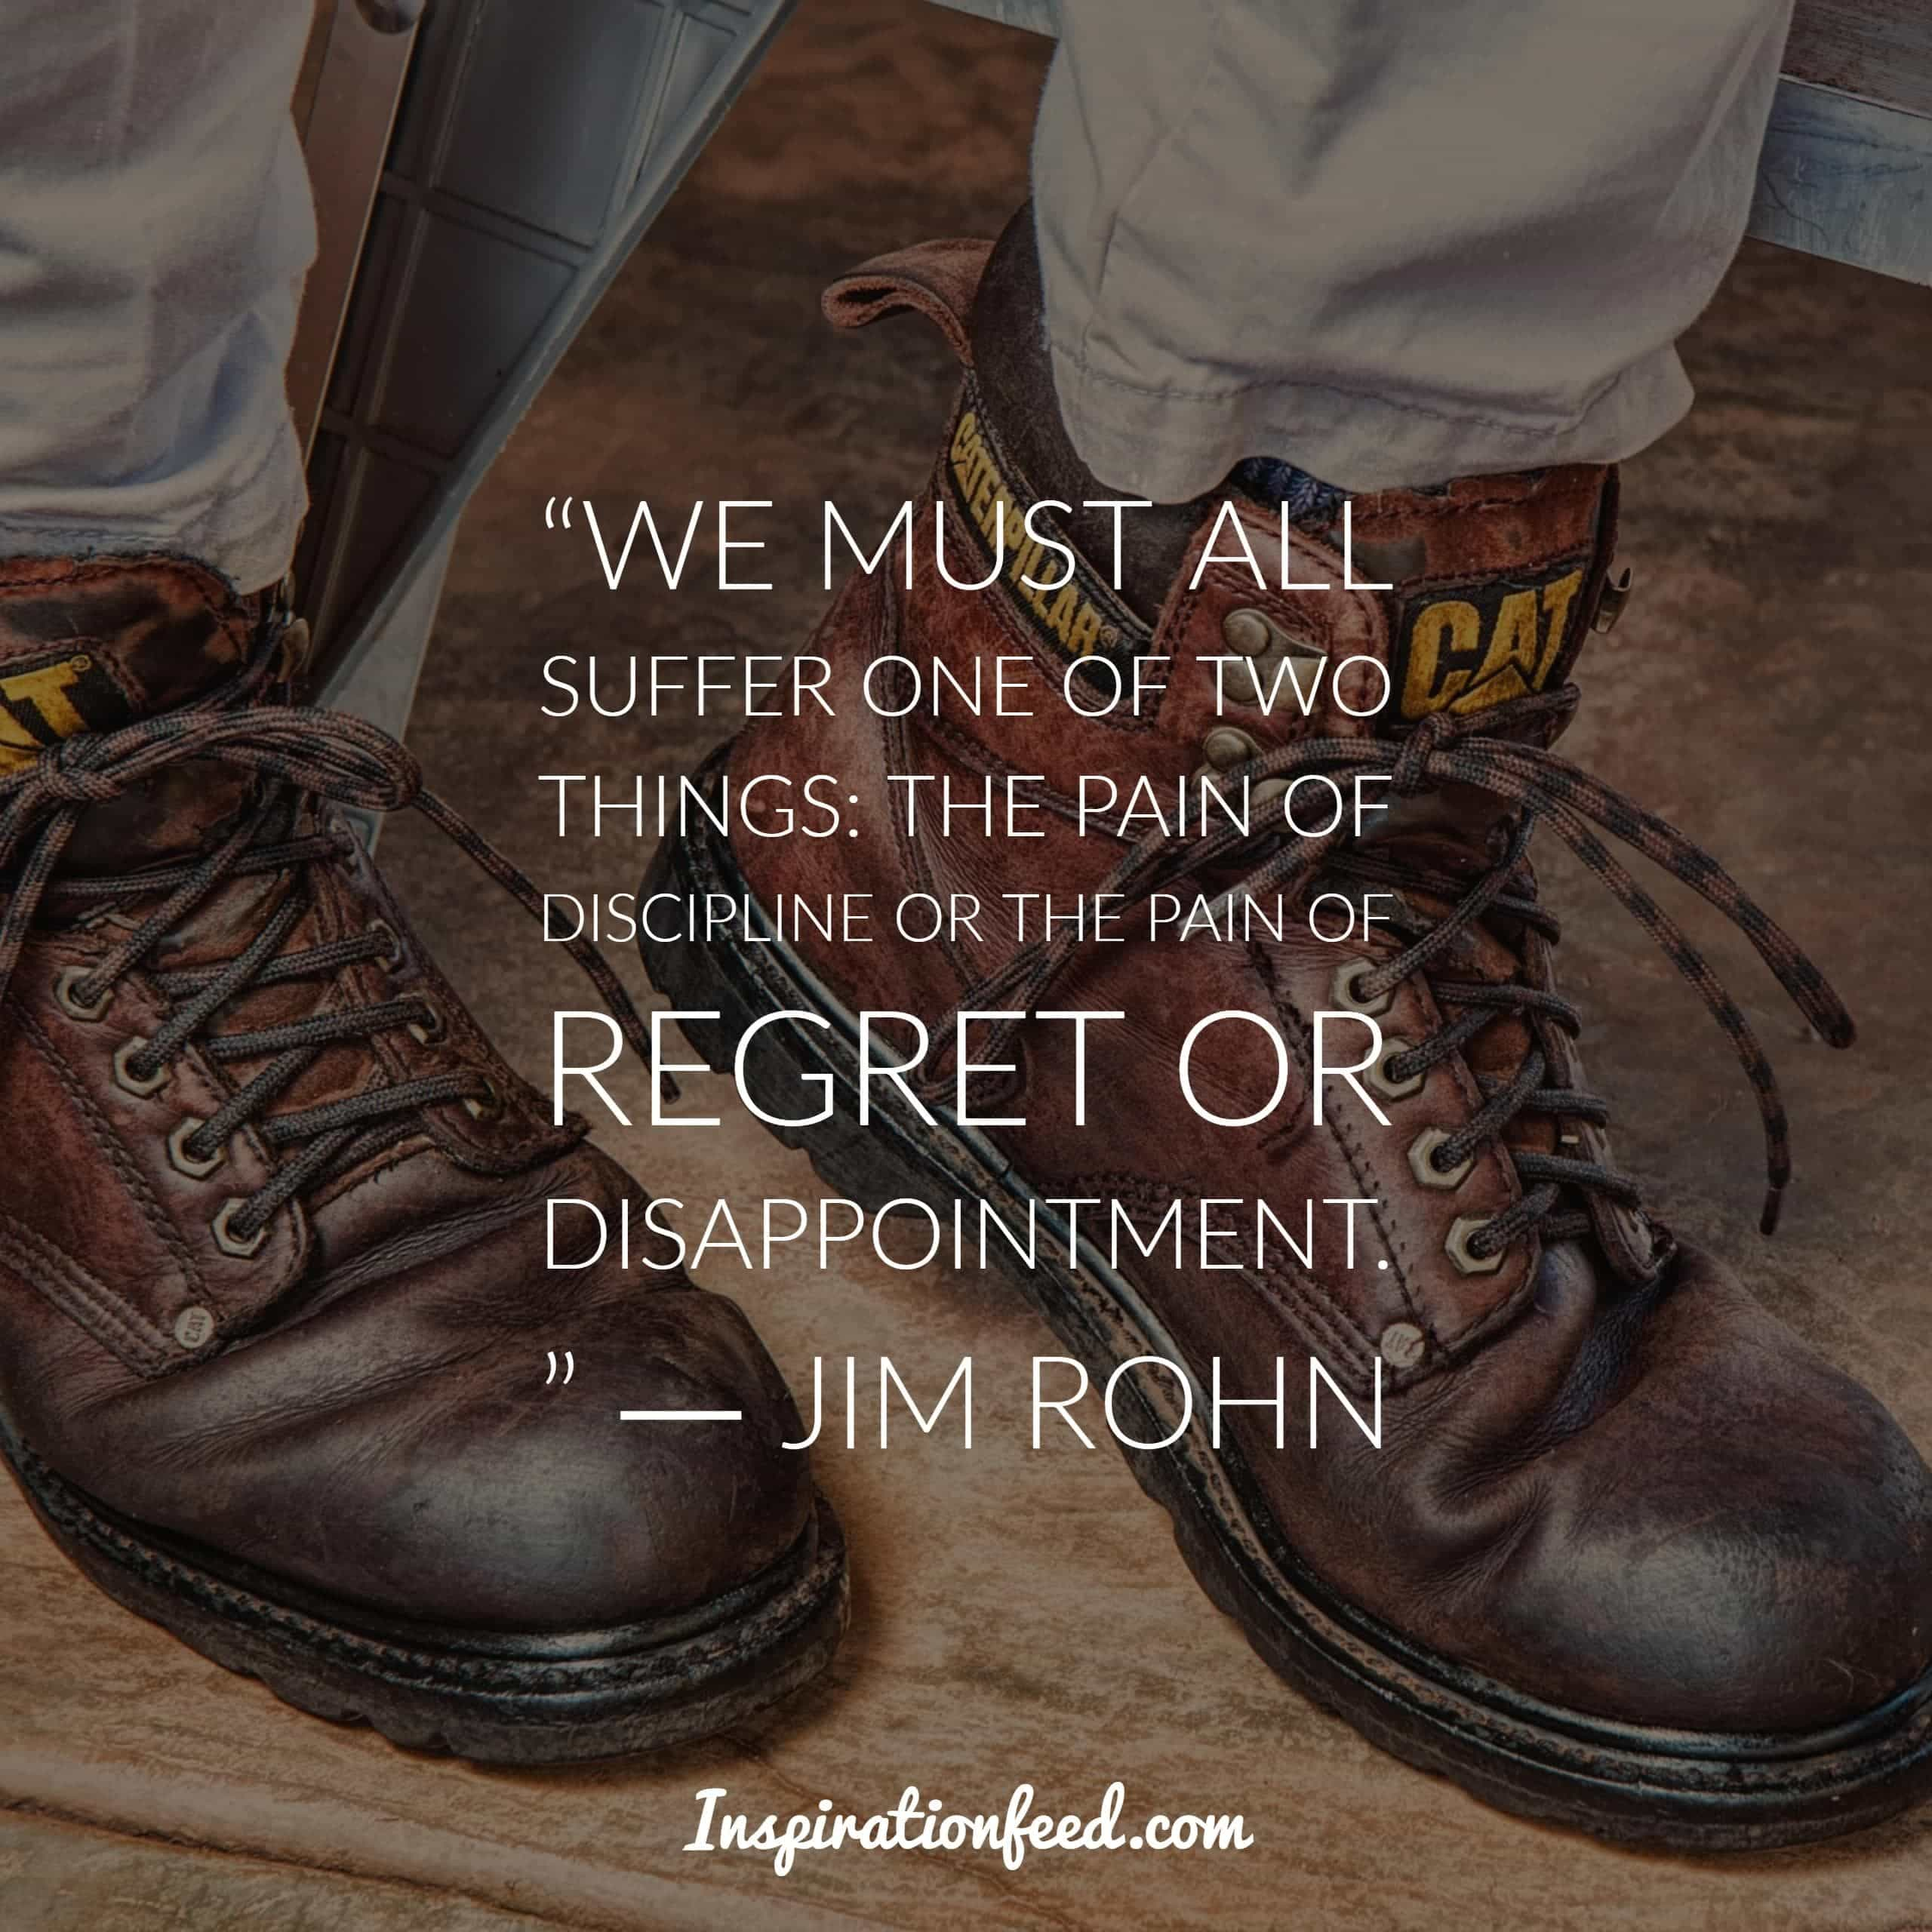 Top 20 Motivational Jim Rohn Quotes Inspirationfeed Part 2